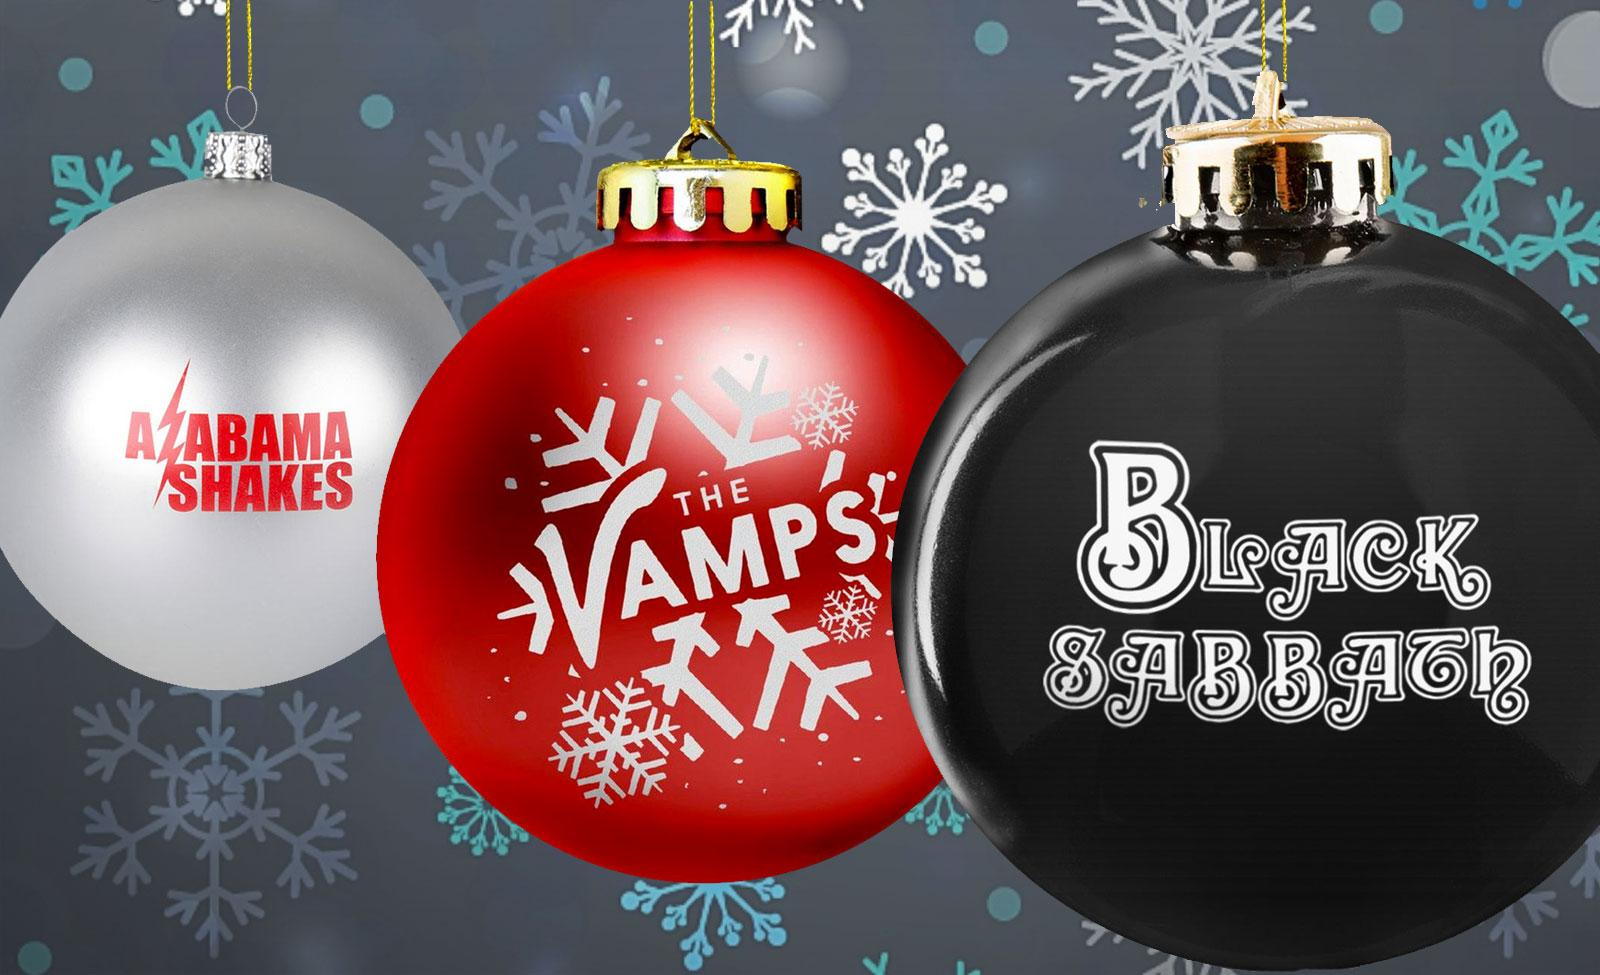 Ornaments, Stockings & More from Your Favorite Artists!